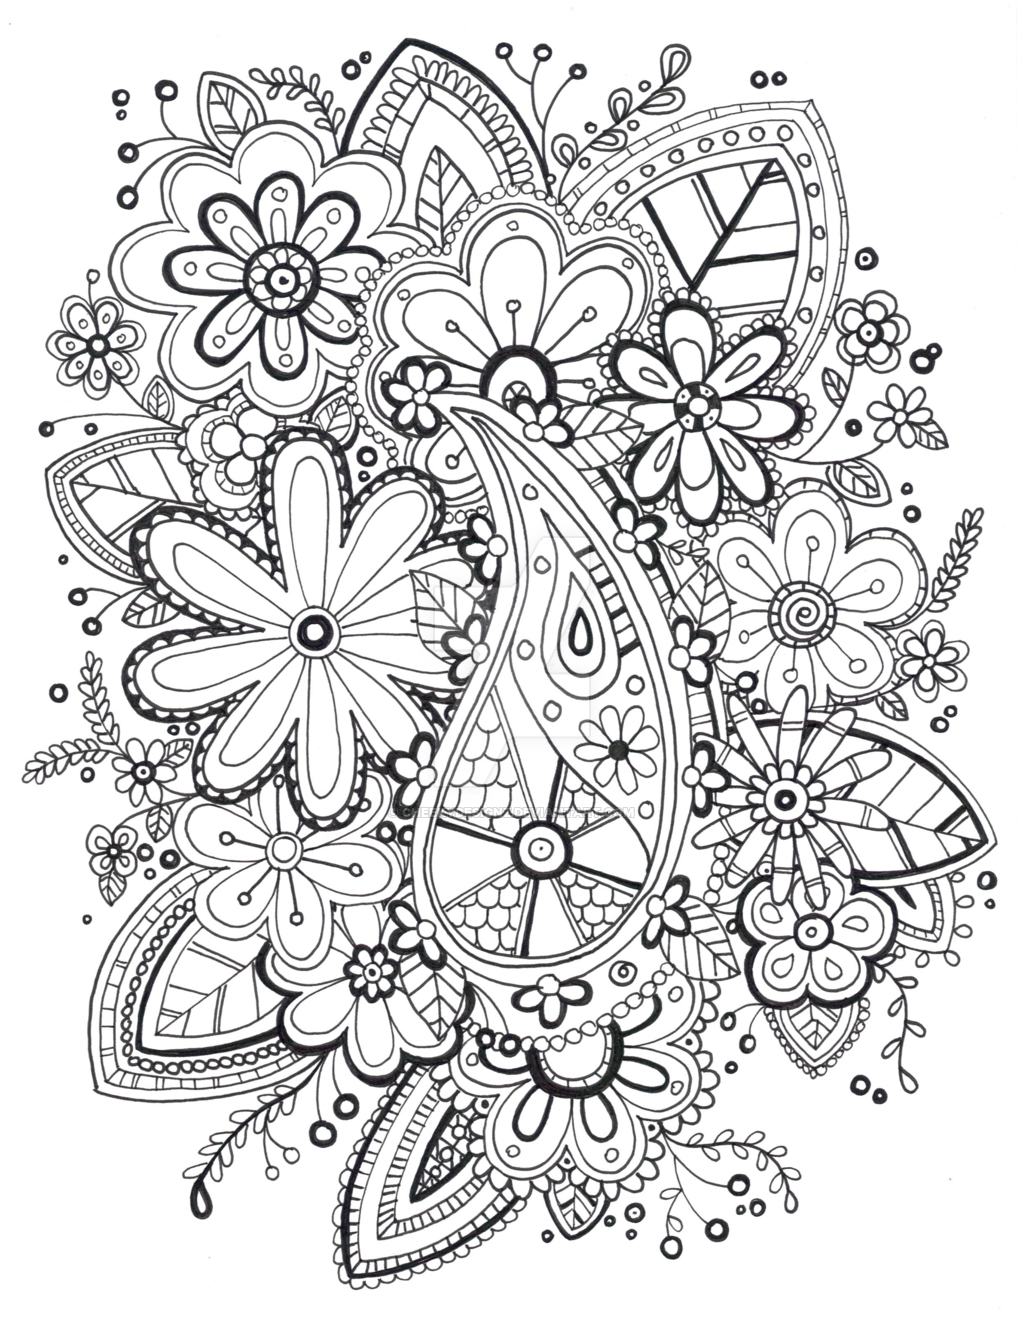 zentangle coloring pages - Zentangle Coloring Page